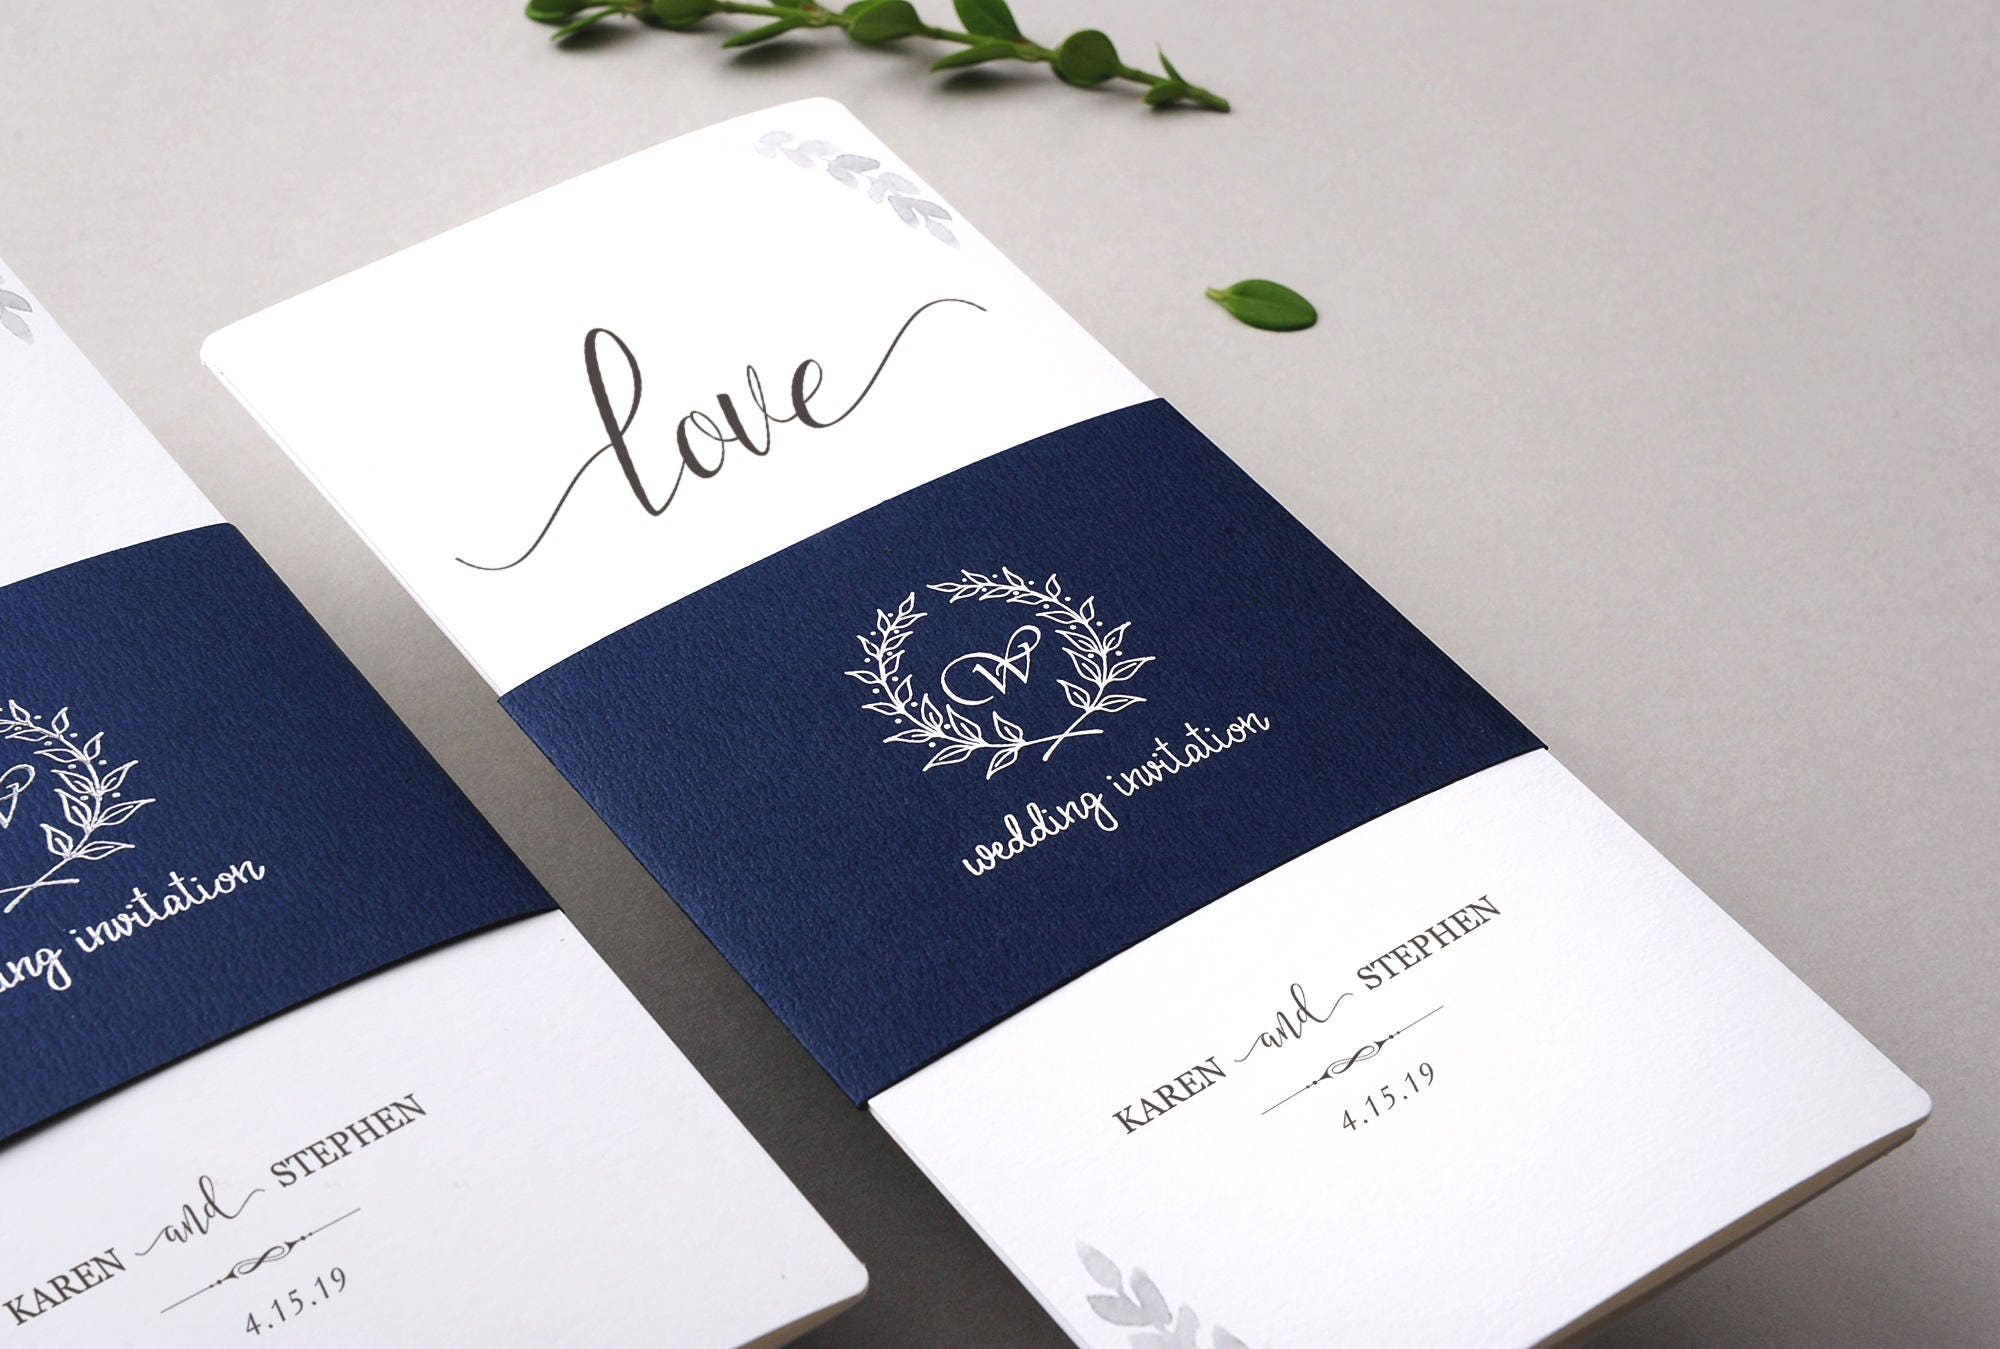 All In One Wedding Invitations - Wedding Photography